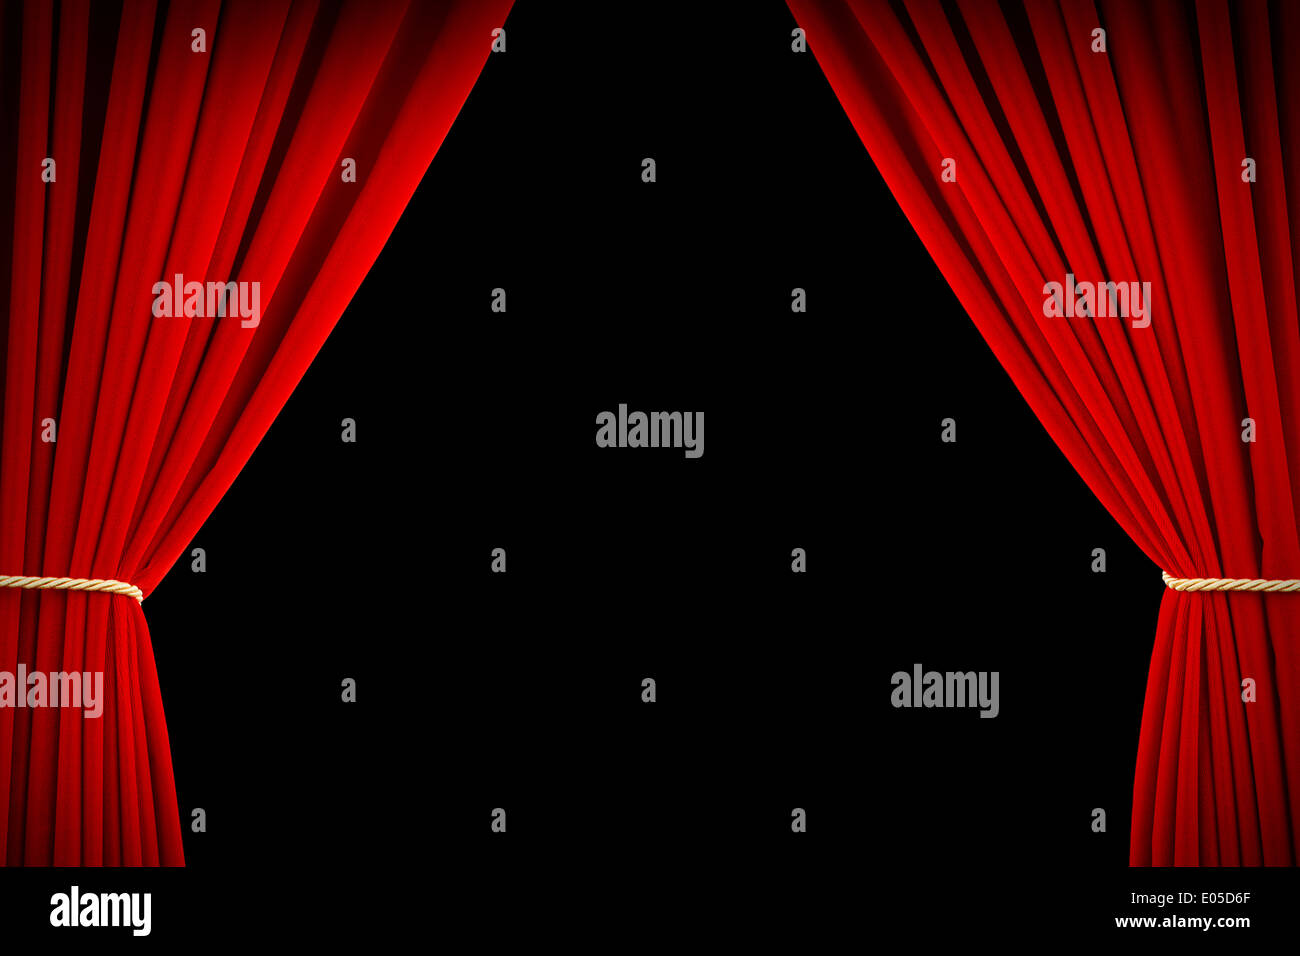 Open Red Velvet Movie Curtains with Black Screen. - Stock Image